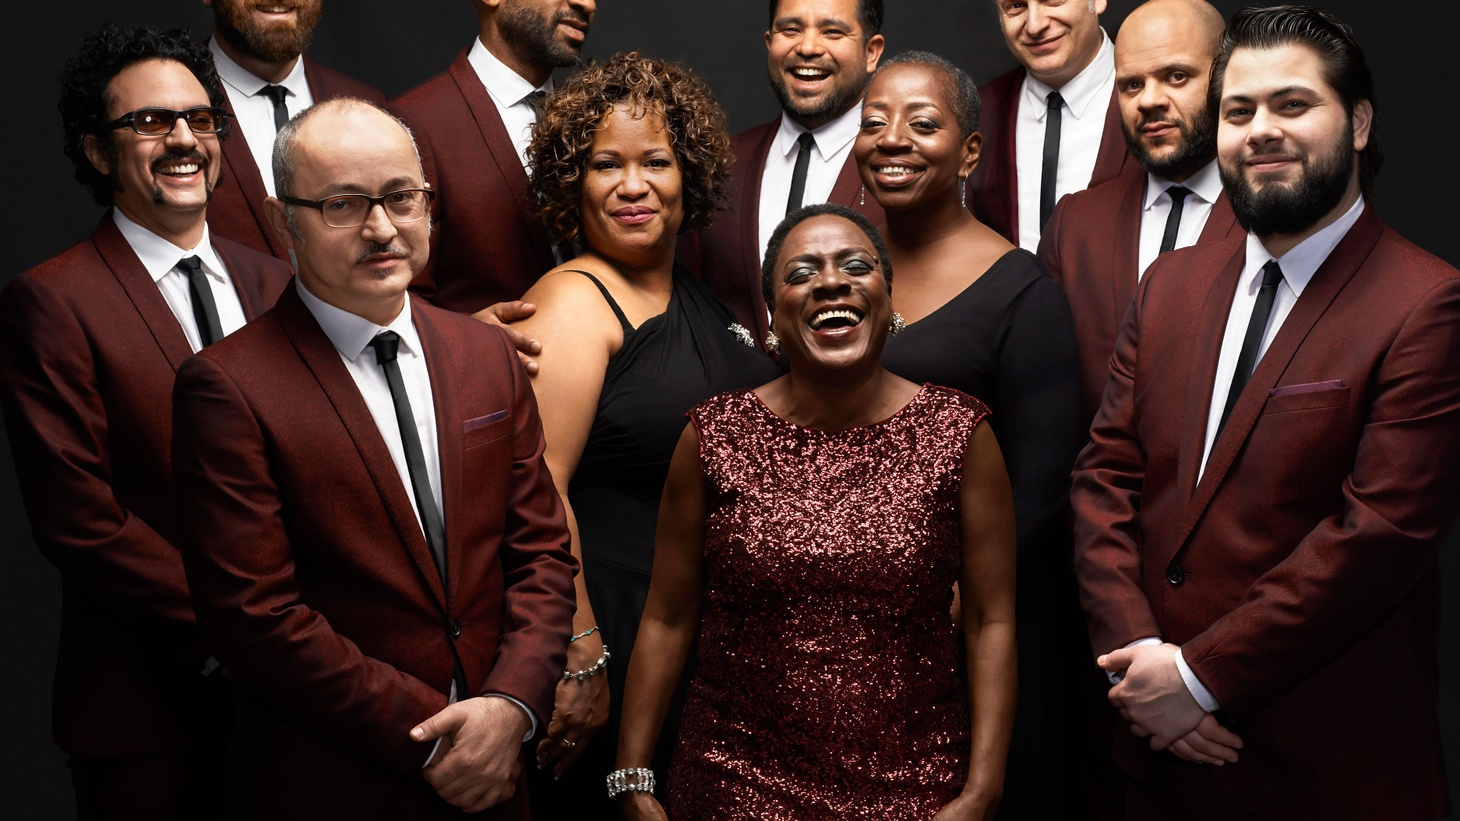 Sharon Jones is a remarkable singer with an extraordinary tale behind her powerful voice. Academy Award-winning director Barbara Kopple spent a year chronicling Jones' life and turned it into a documentary about the singer as she fought cancer.